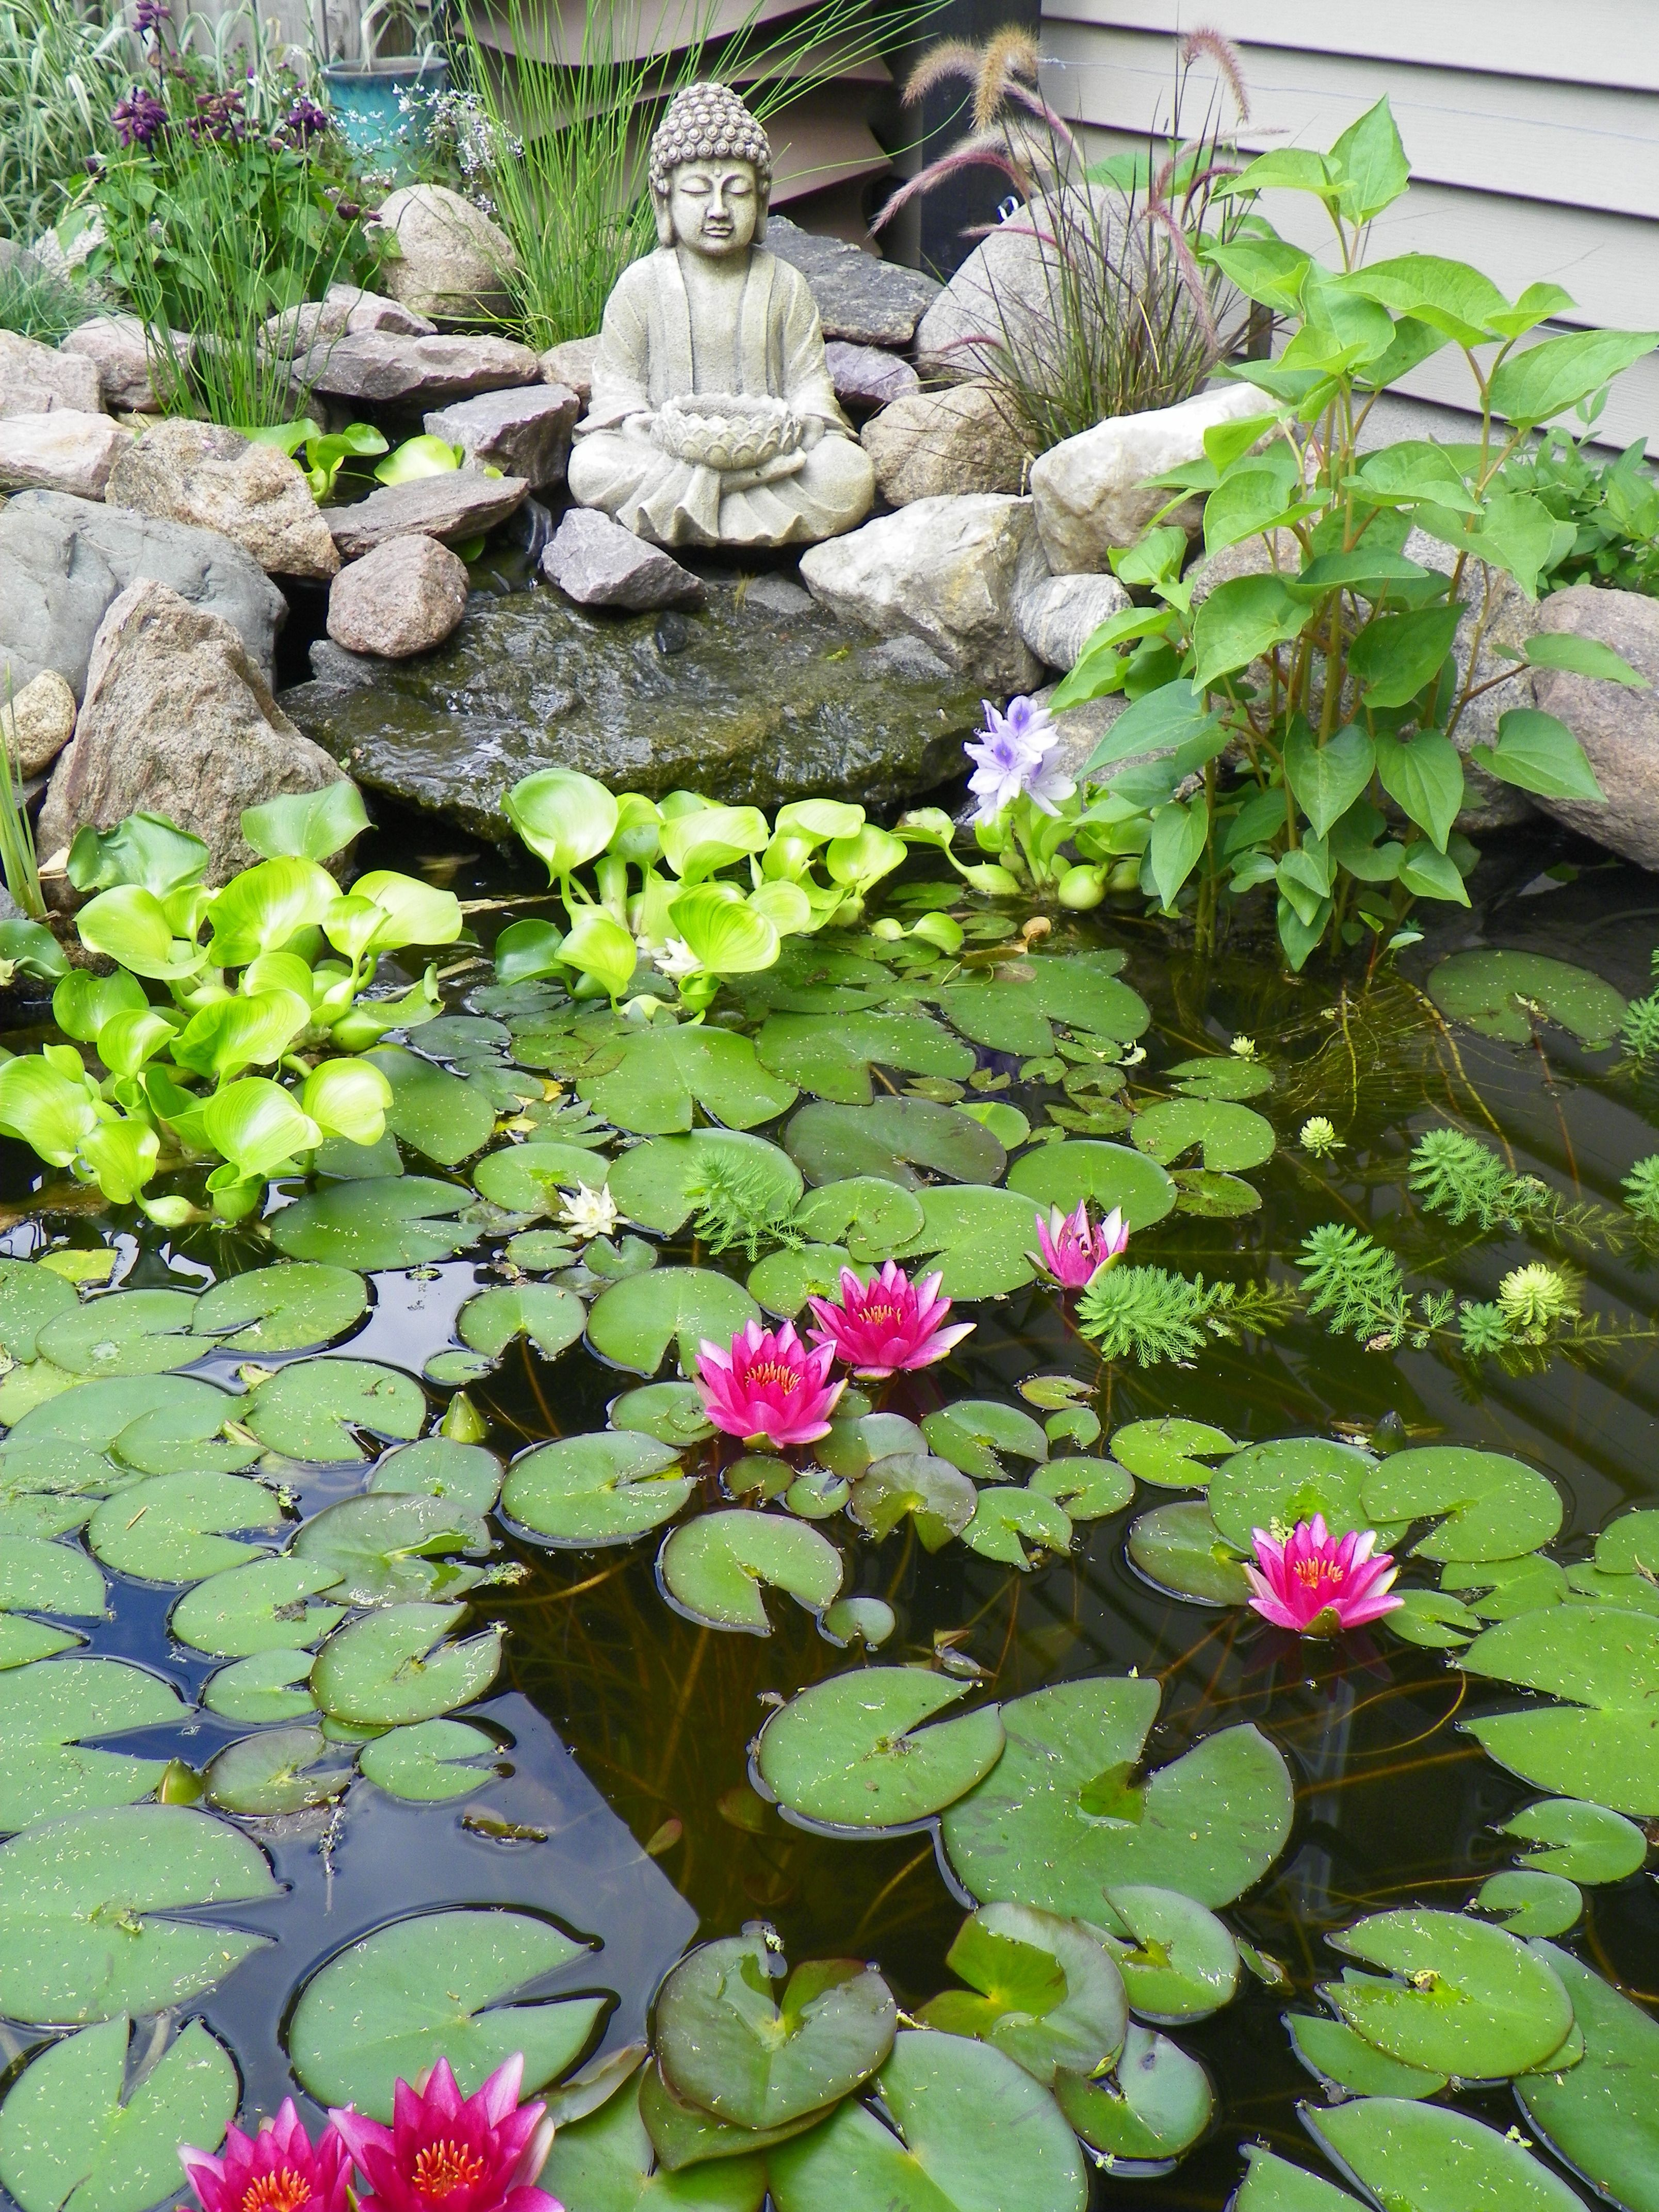 Zen Meditation Pool With Lotus Blossoms Sacred Places Pinterest Pond Gardens And Backyard